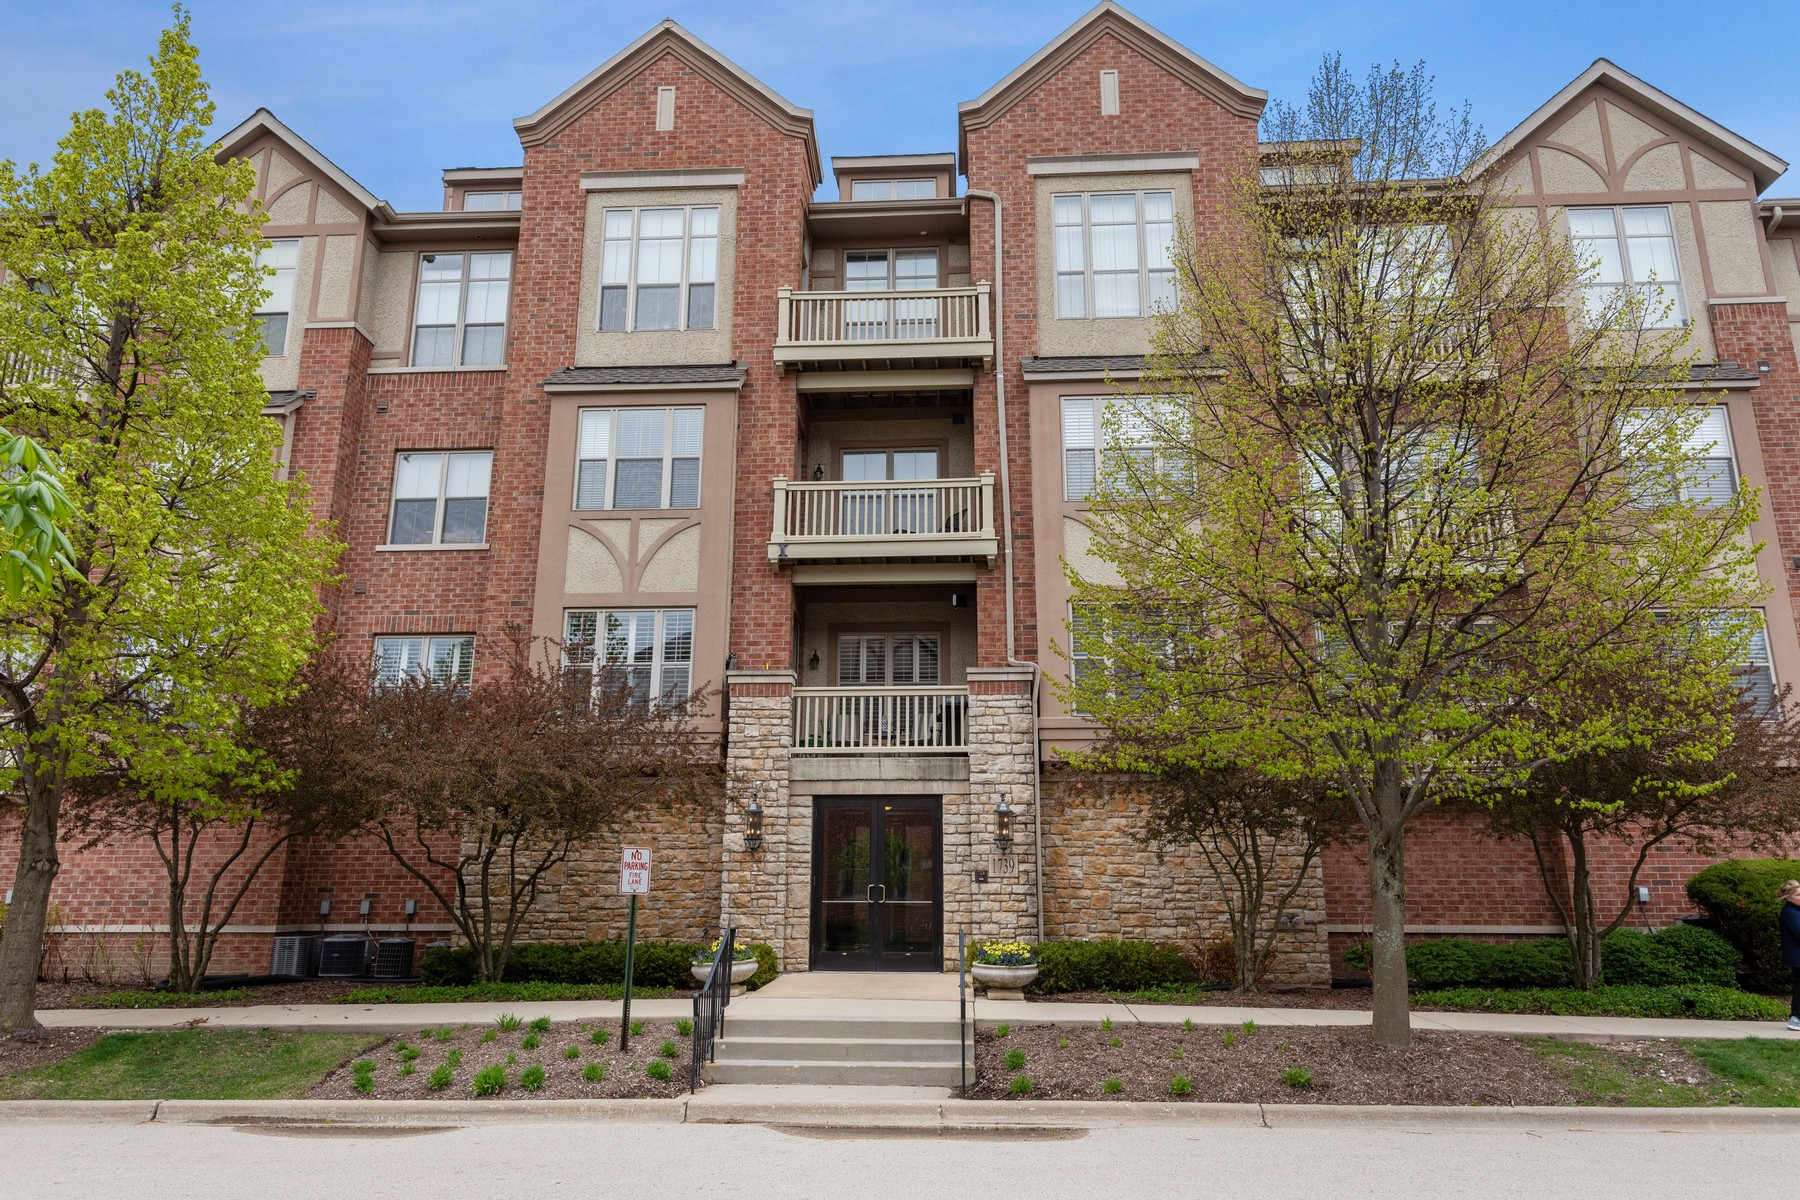 condominiums for Sale at Luxurious 2-Bedroom Light-Filled Condo 1739 Tudor Lane Unit 103 Northbrook, Illinois 60062 United States